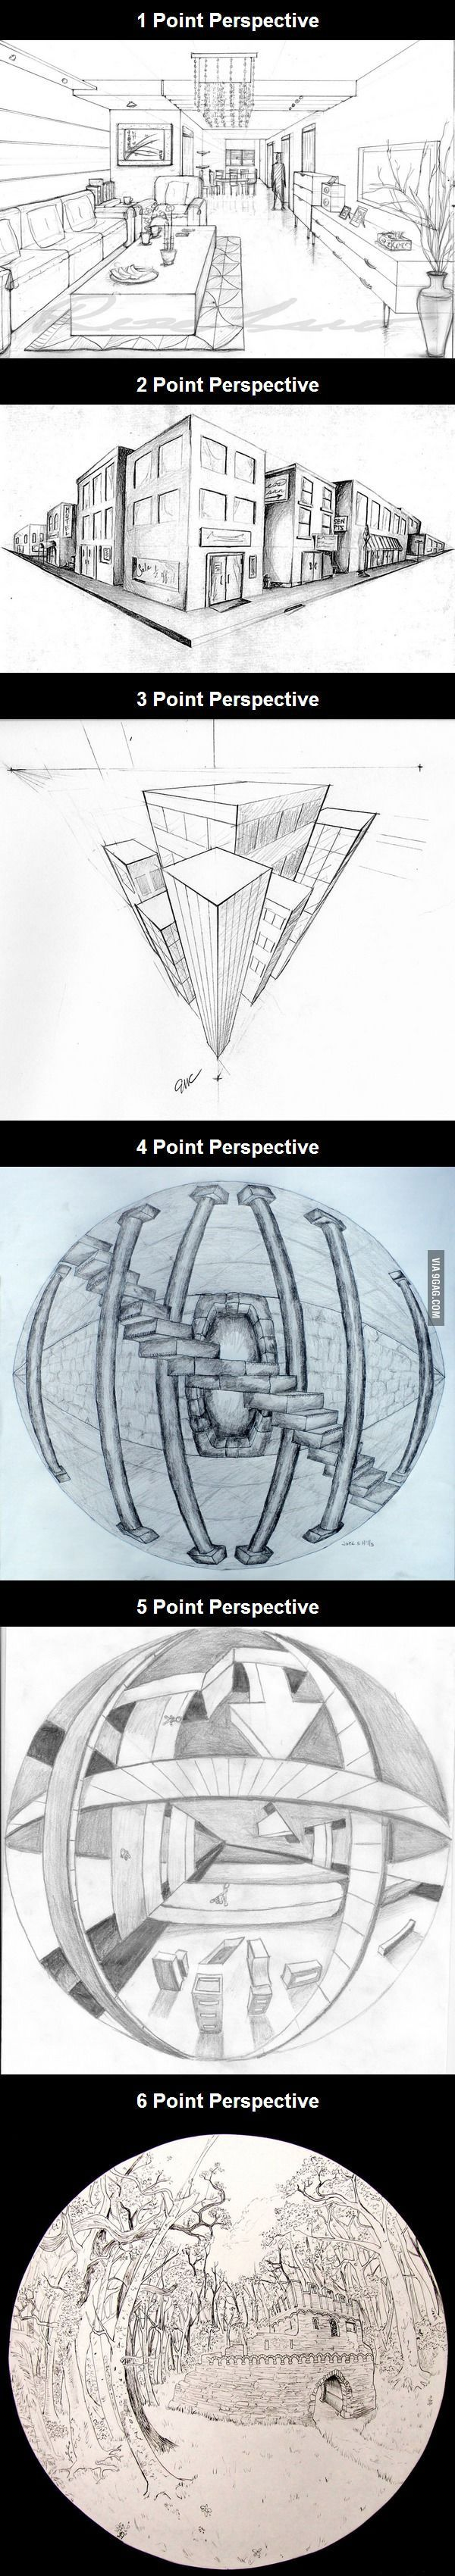 49 best Drawing Ideas images on Pinterest   Drawing ideas, Drawing ...